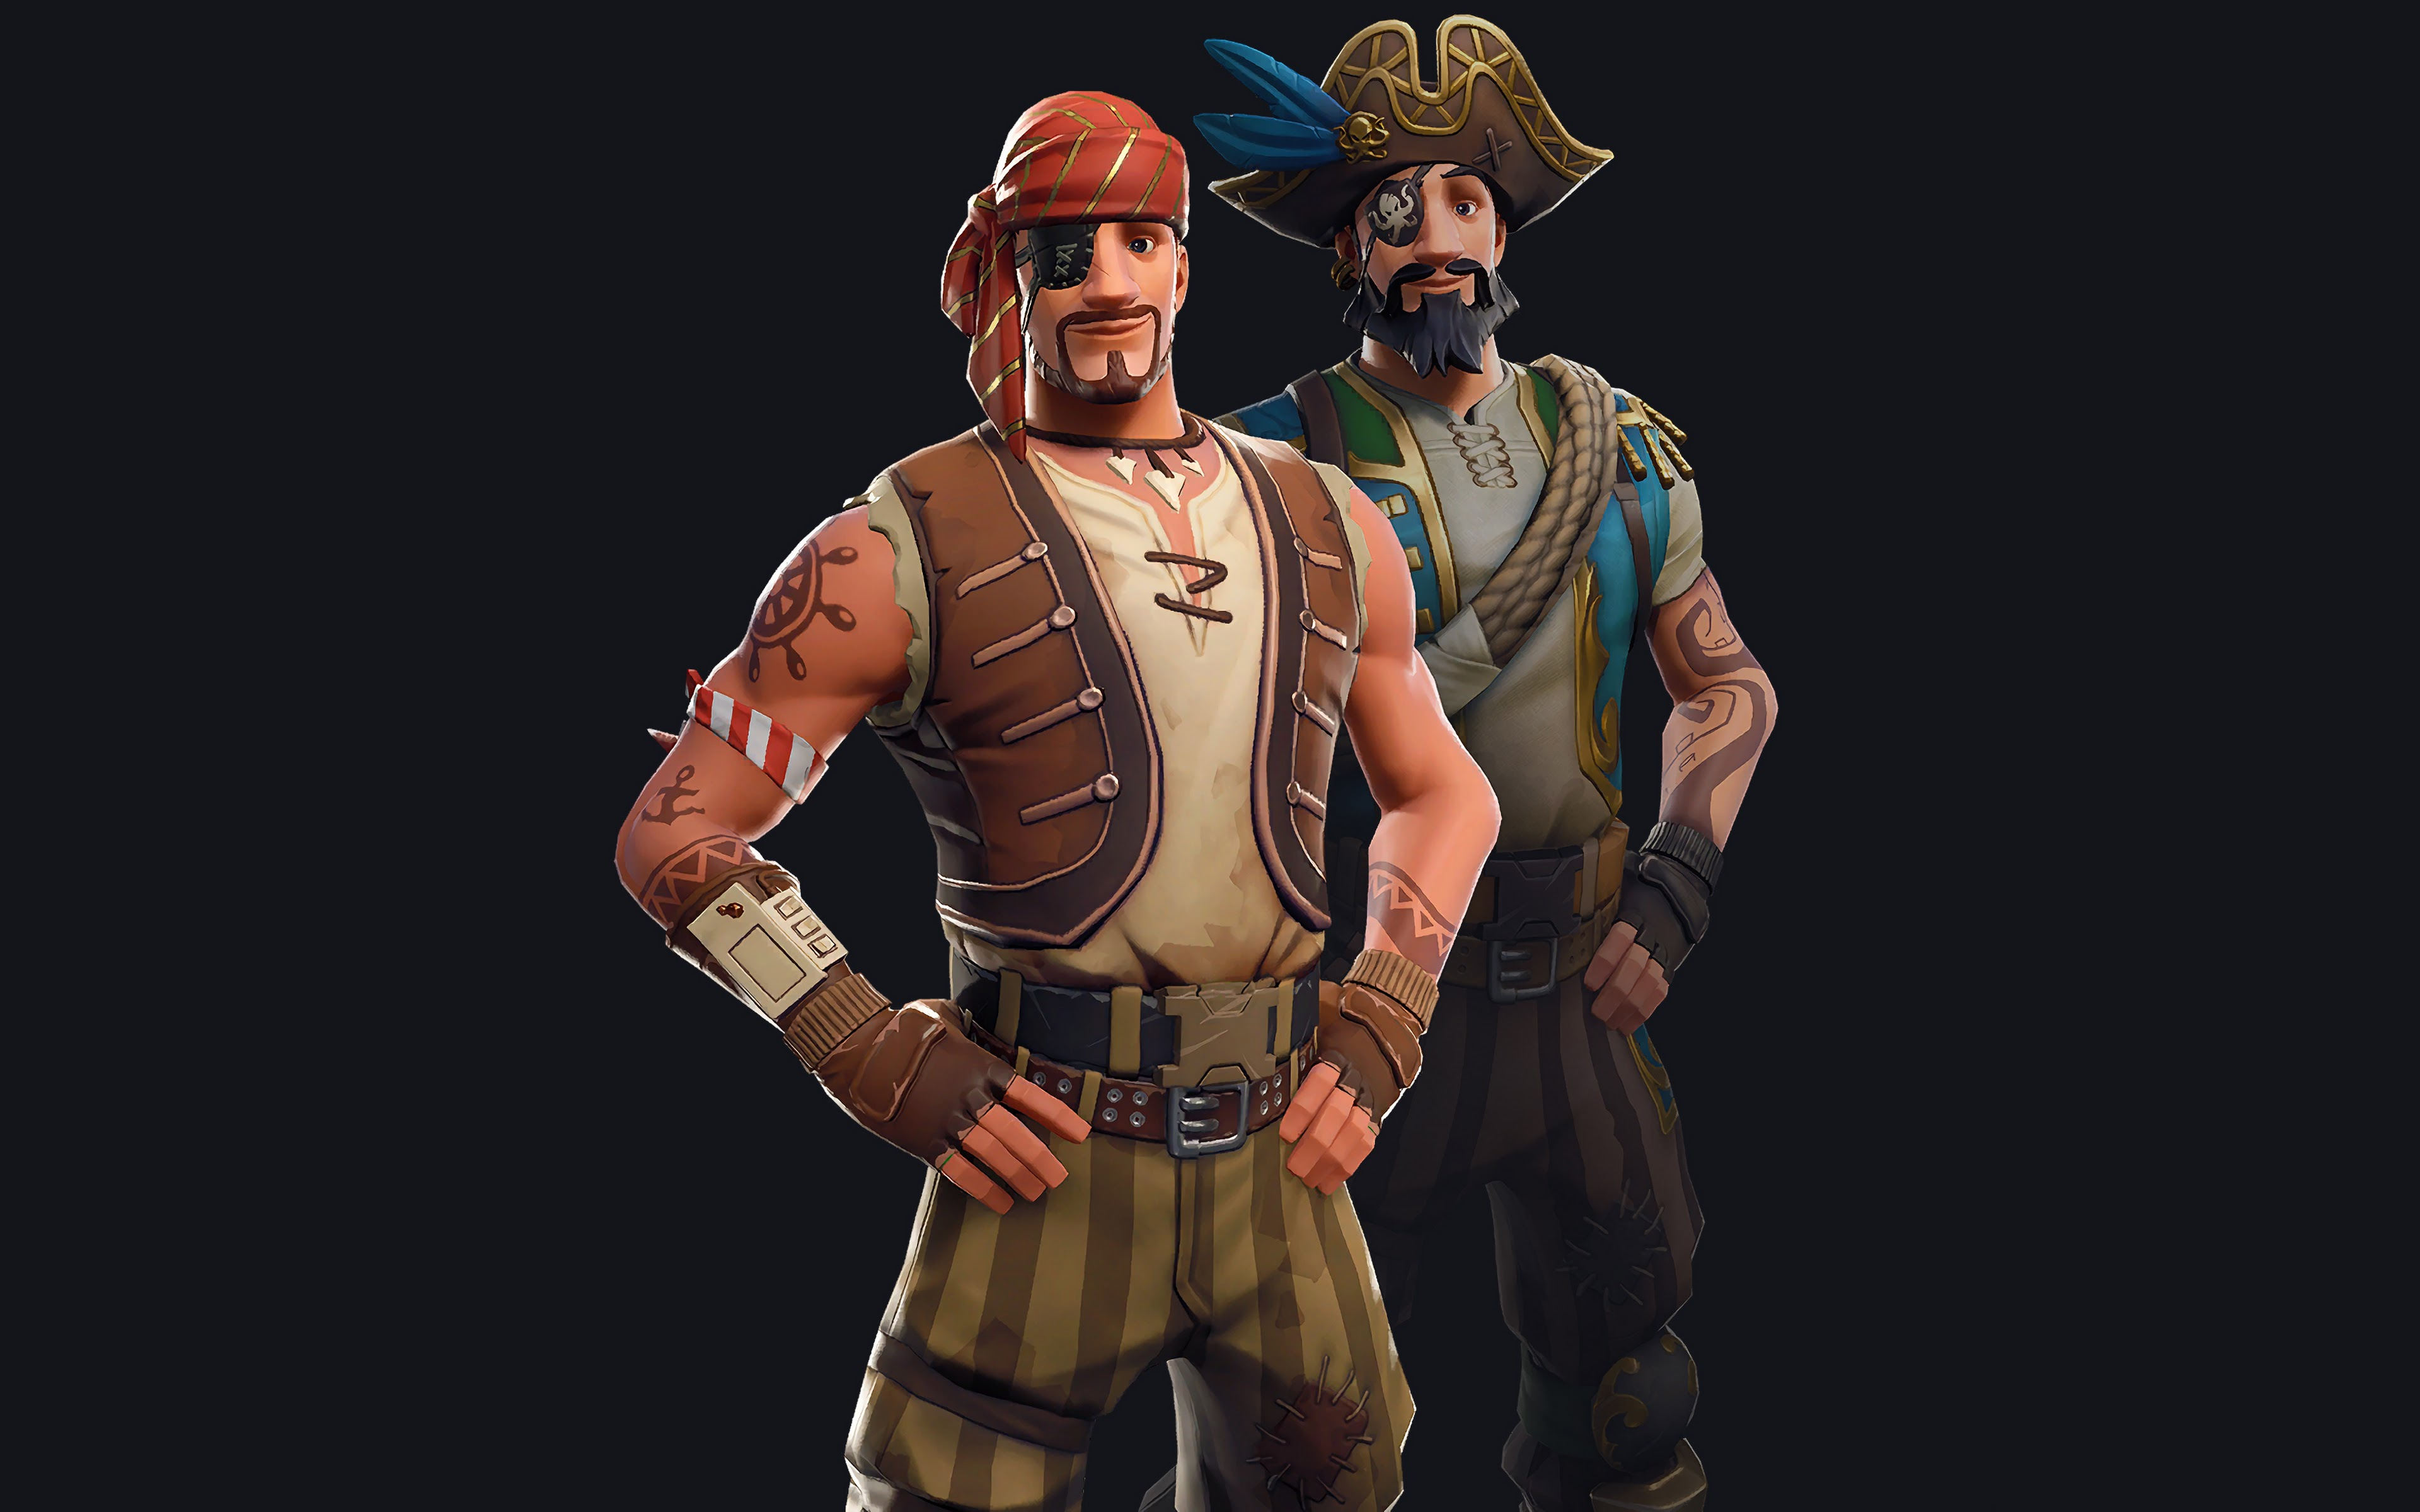 Fortnite Sea Wolf Outfit Skin 4k Wallpaper 153